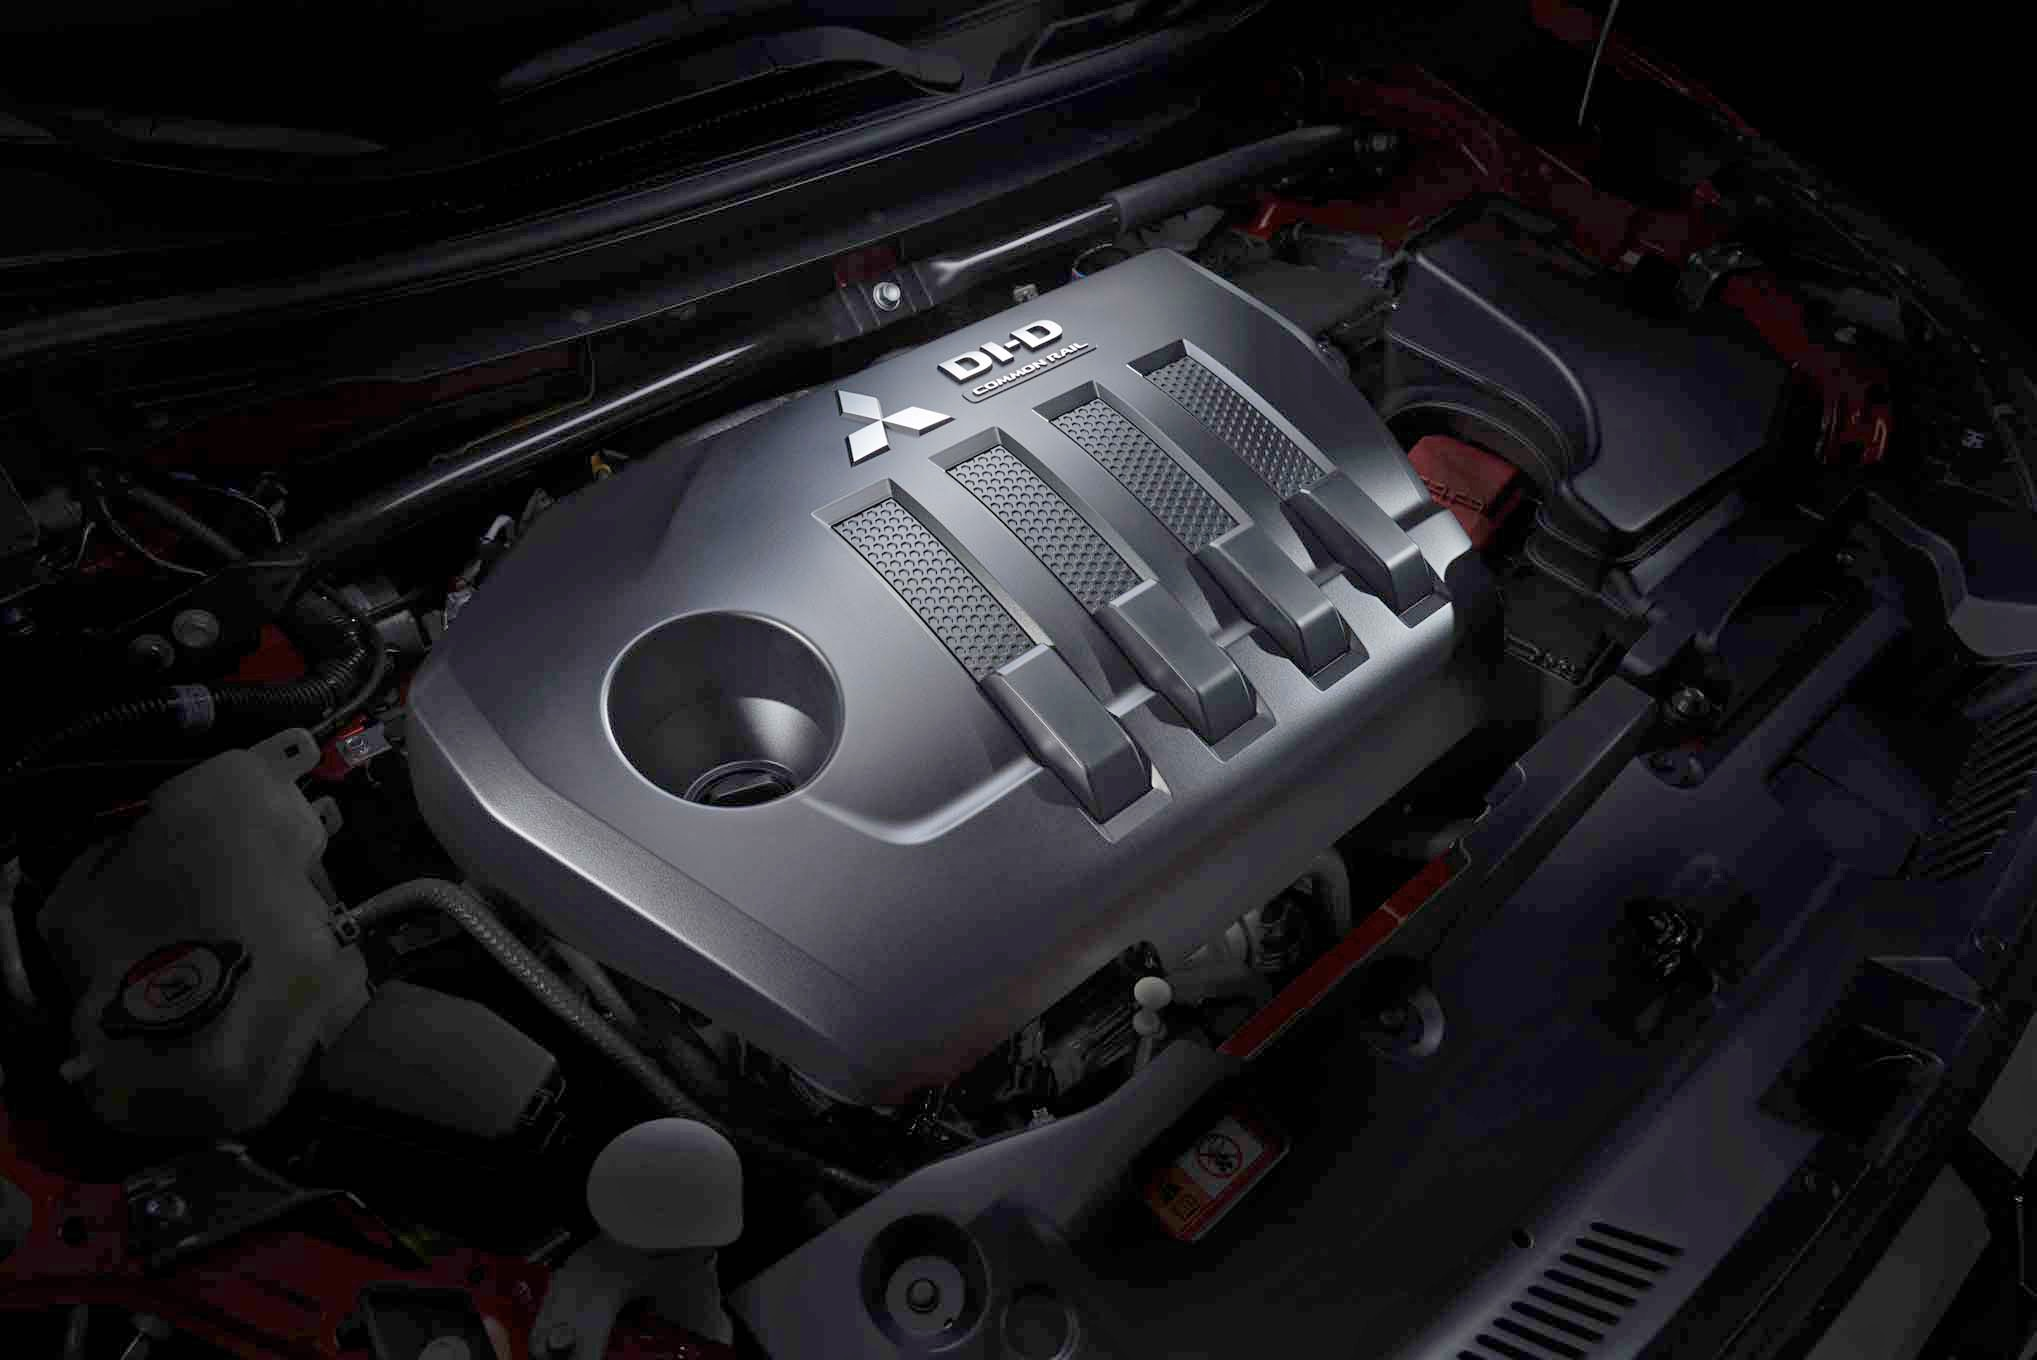 2018 Mitsubishi Eclipse Cross Engine 02 1